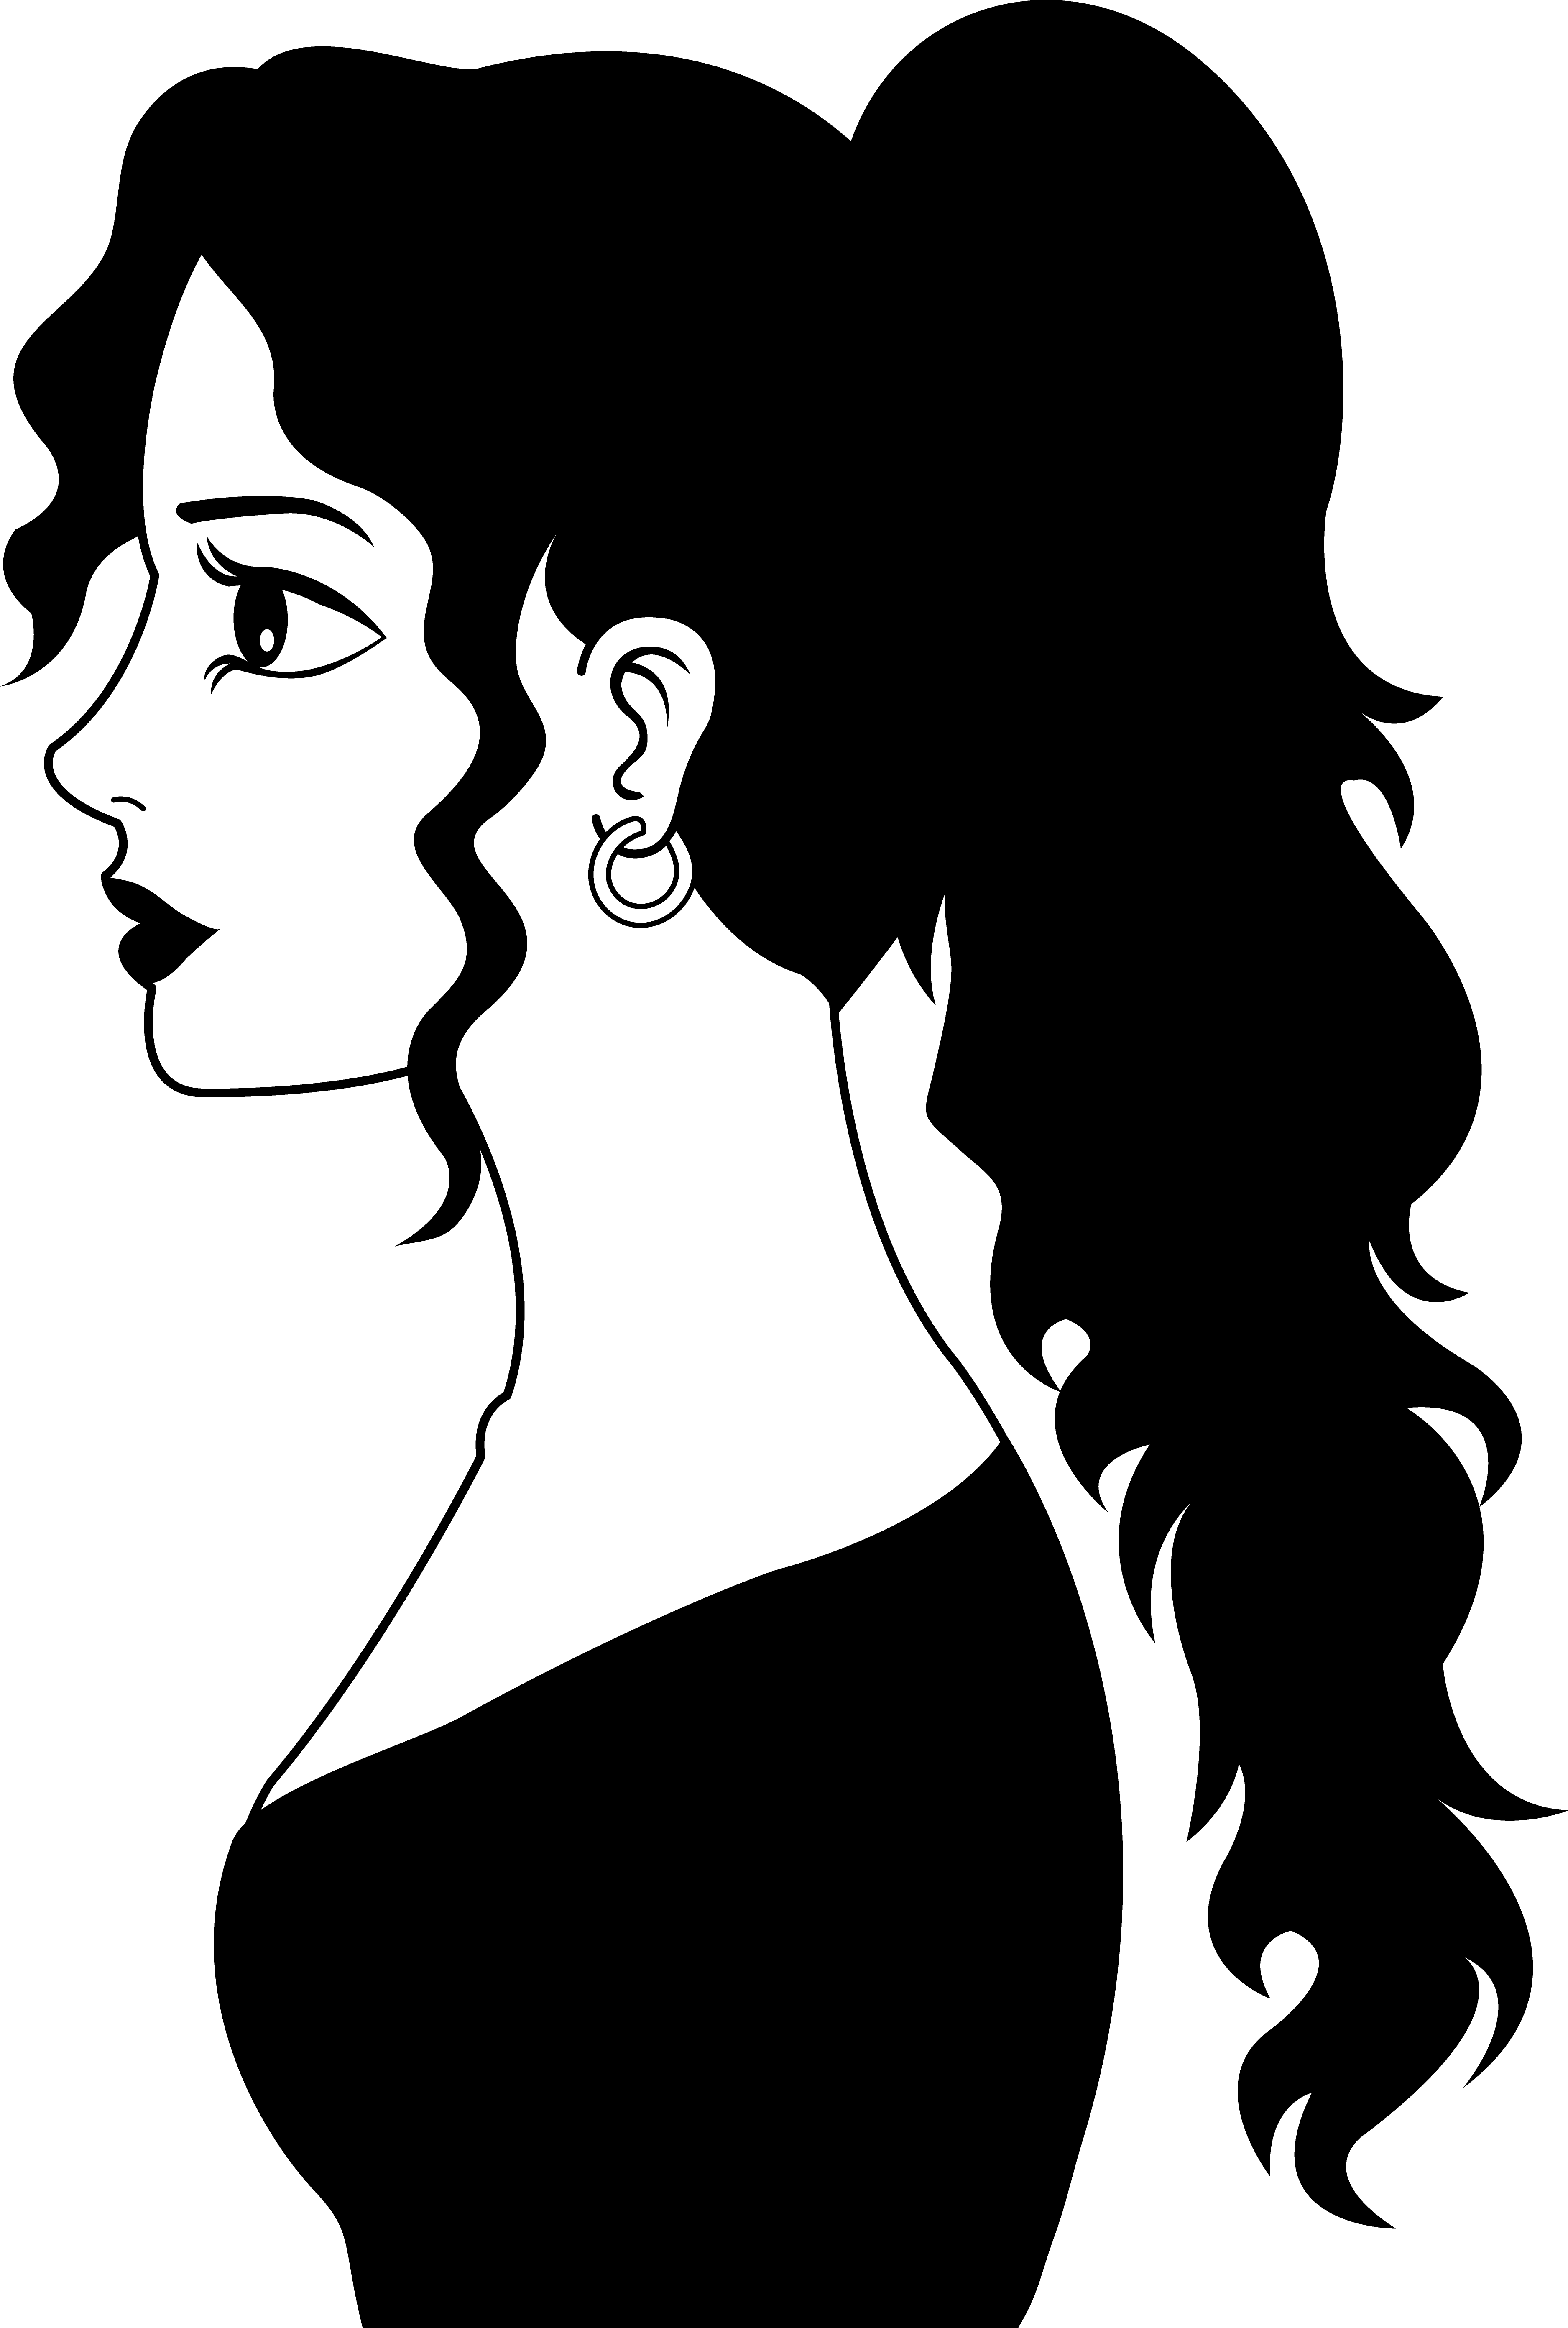 Women pretty free collection. Lady clipart side view